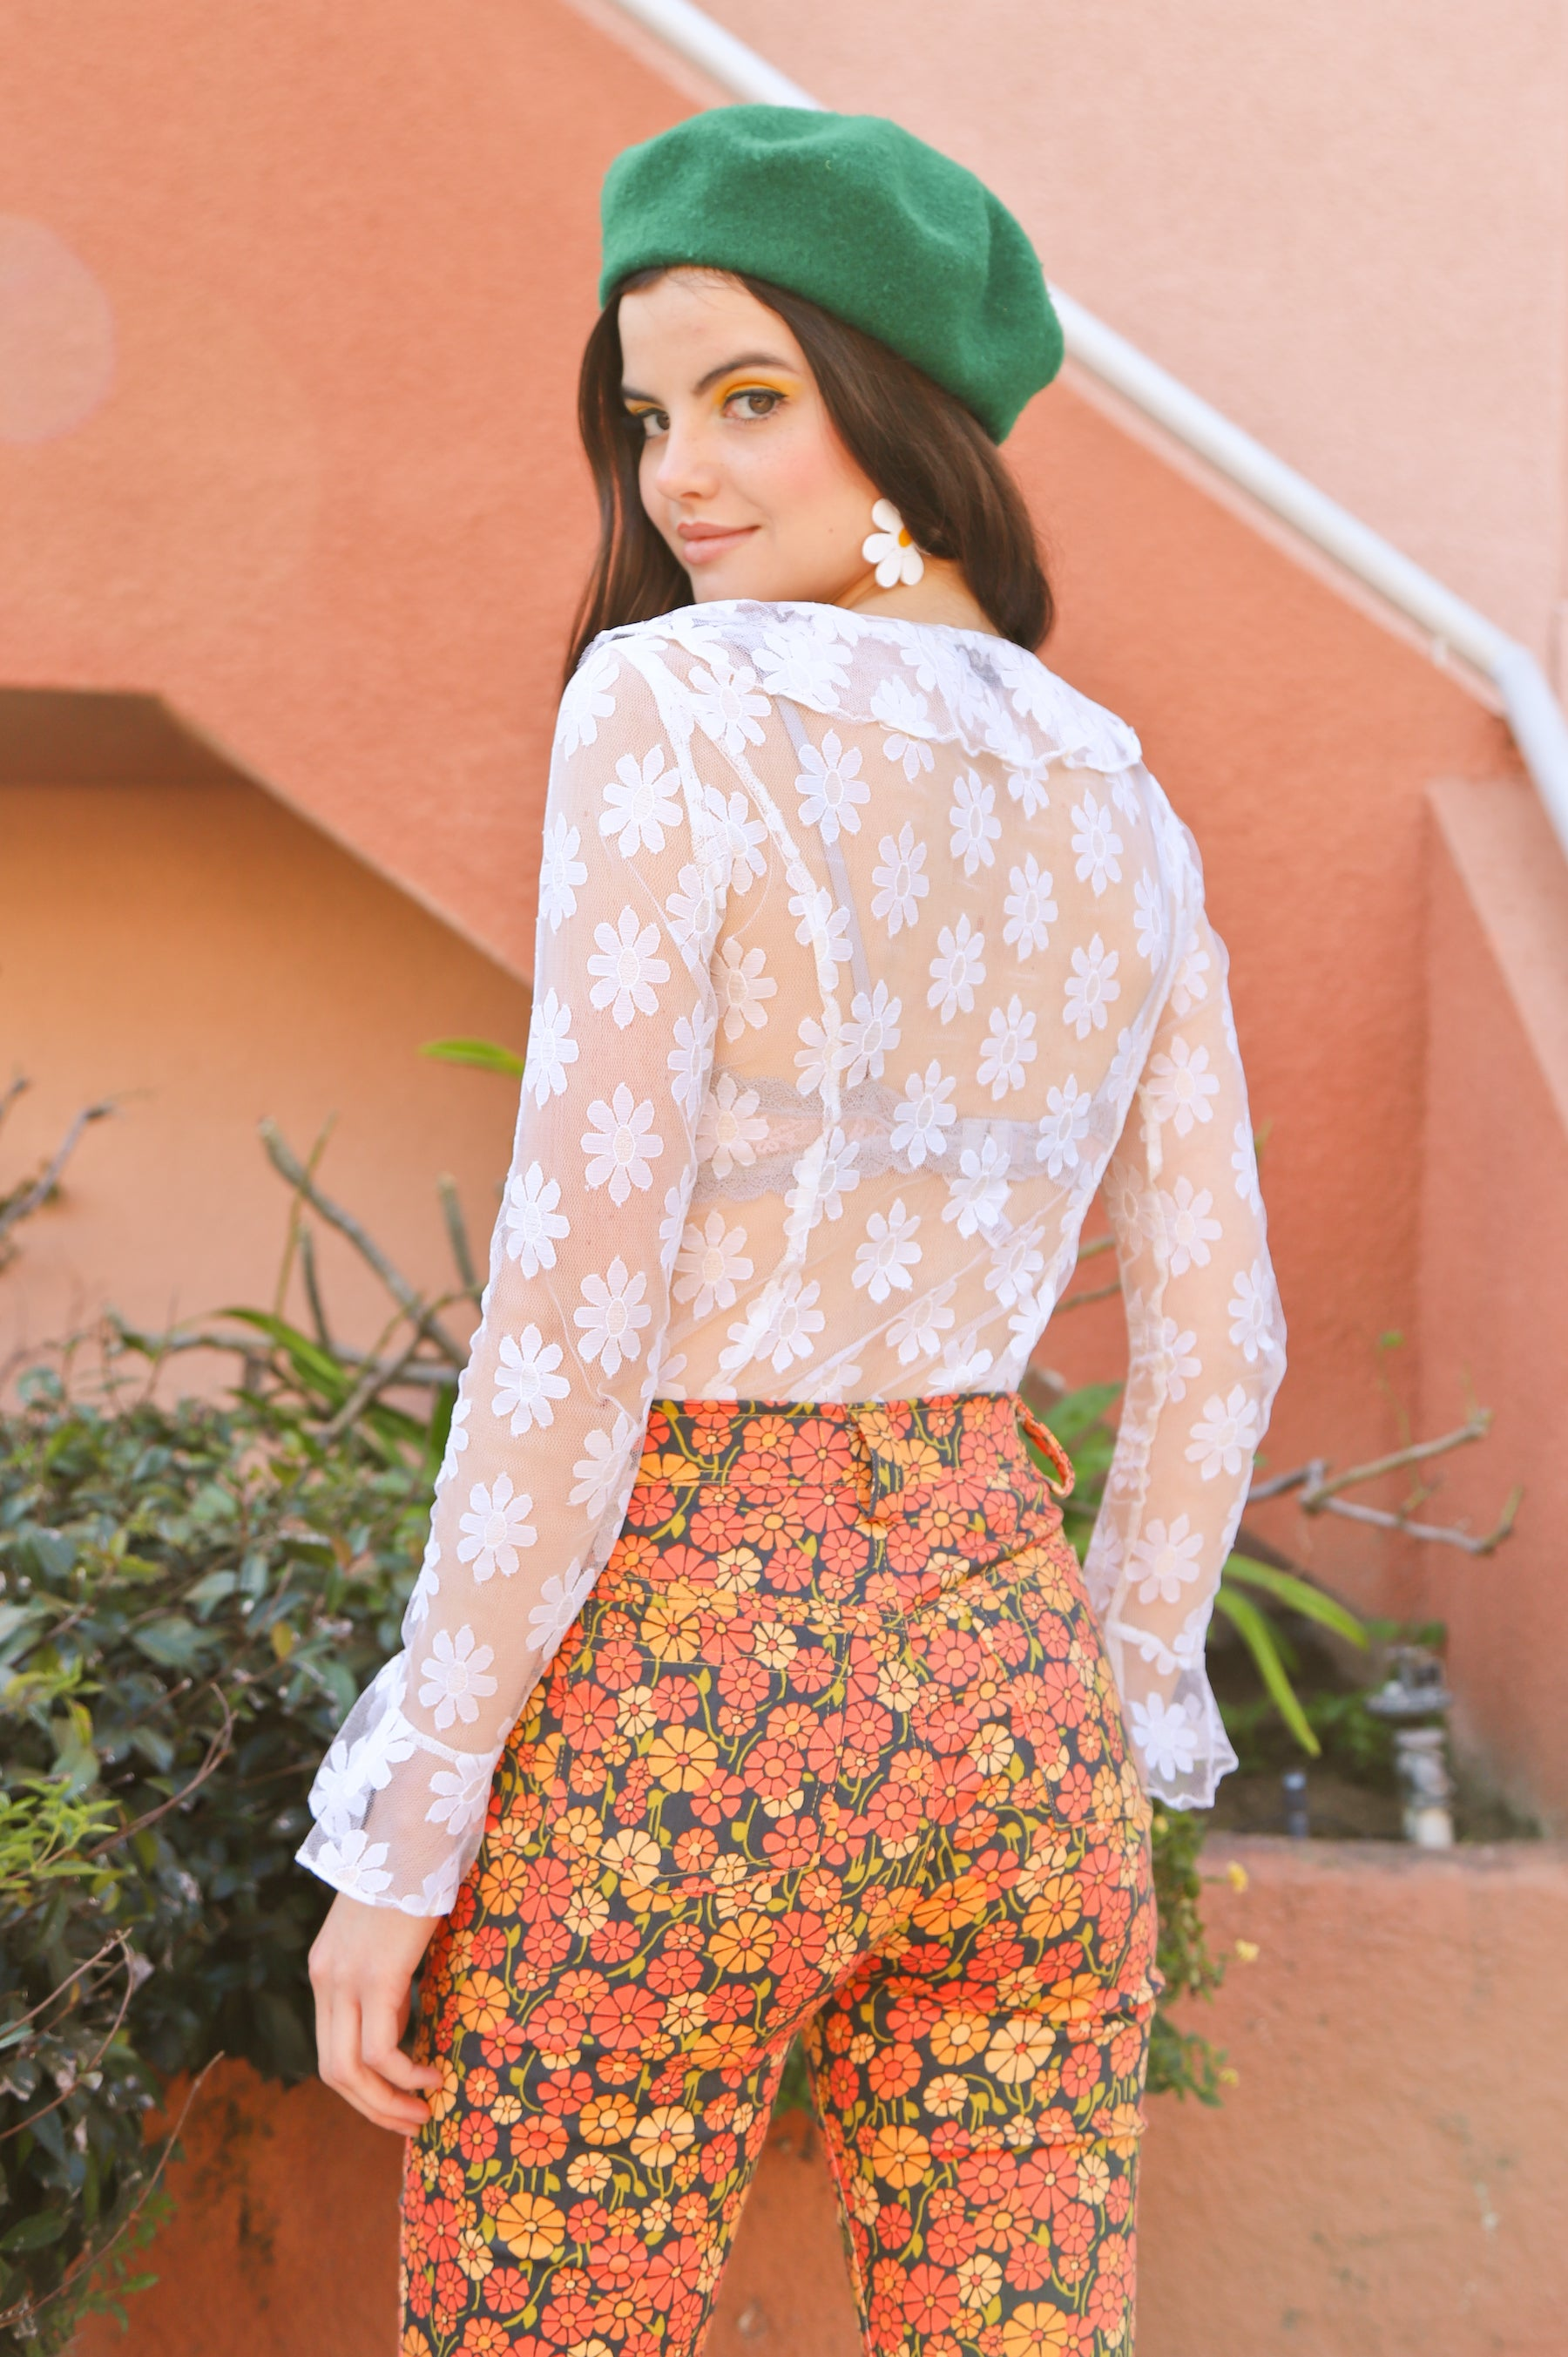 The Daisy Lace Blouse